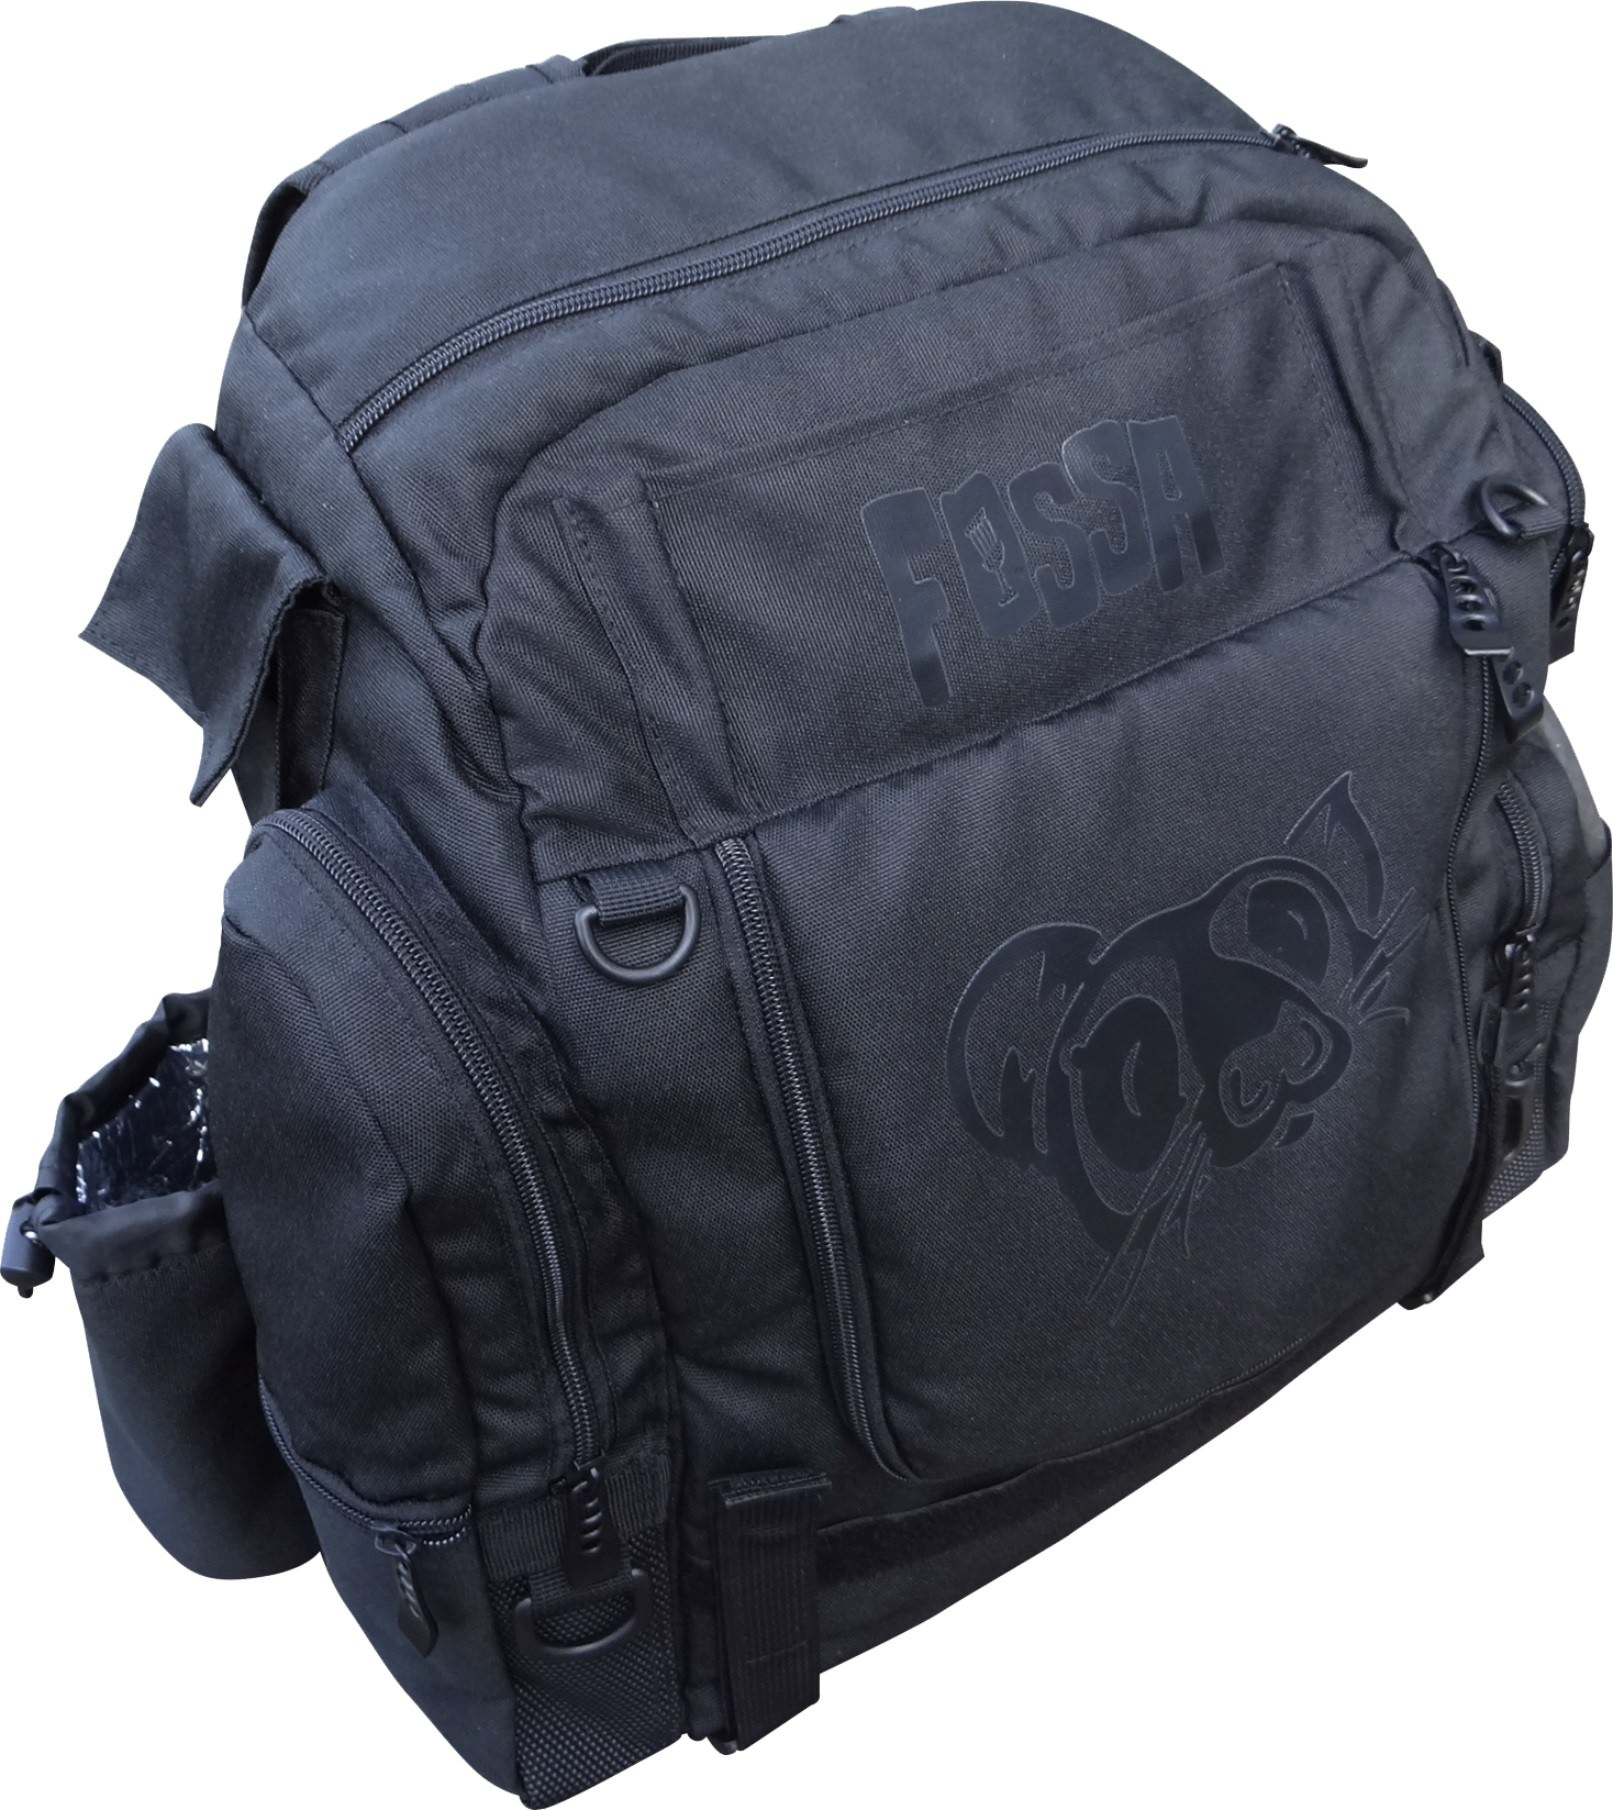 Fossa Tana Pro Backpack Bag